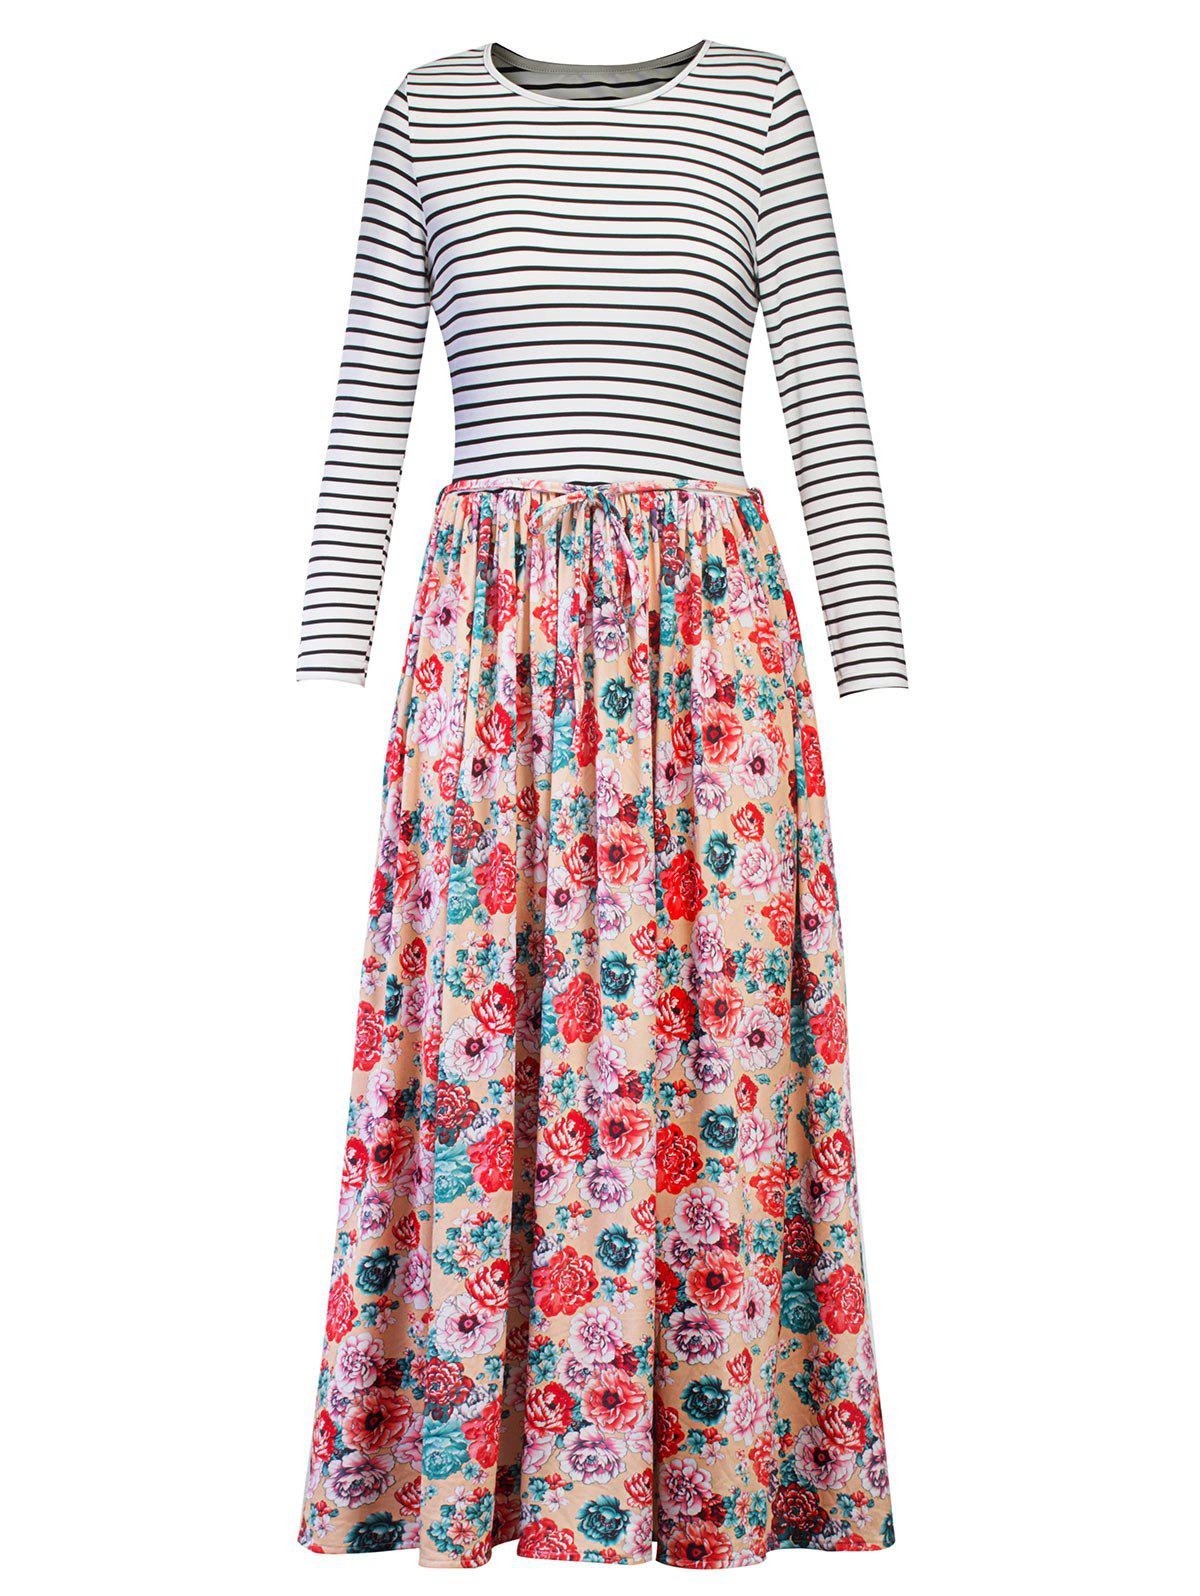 Floral Print Striped Maxi Dress - FLORAL XL